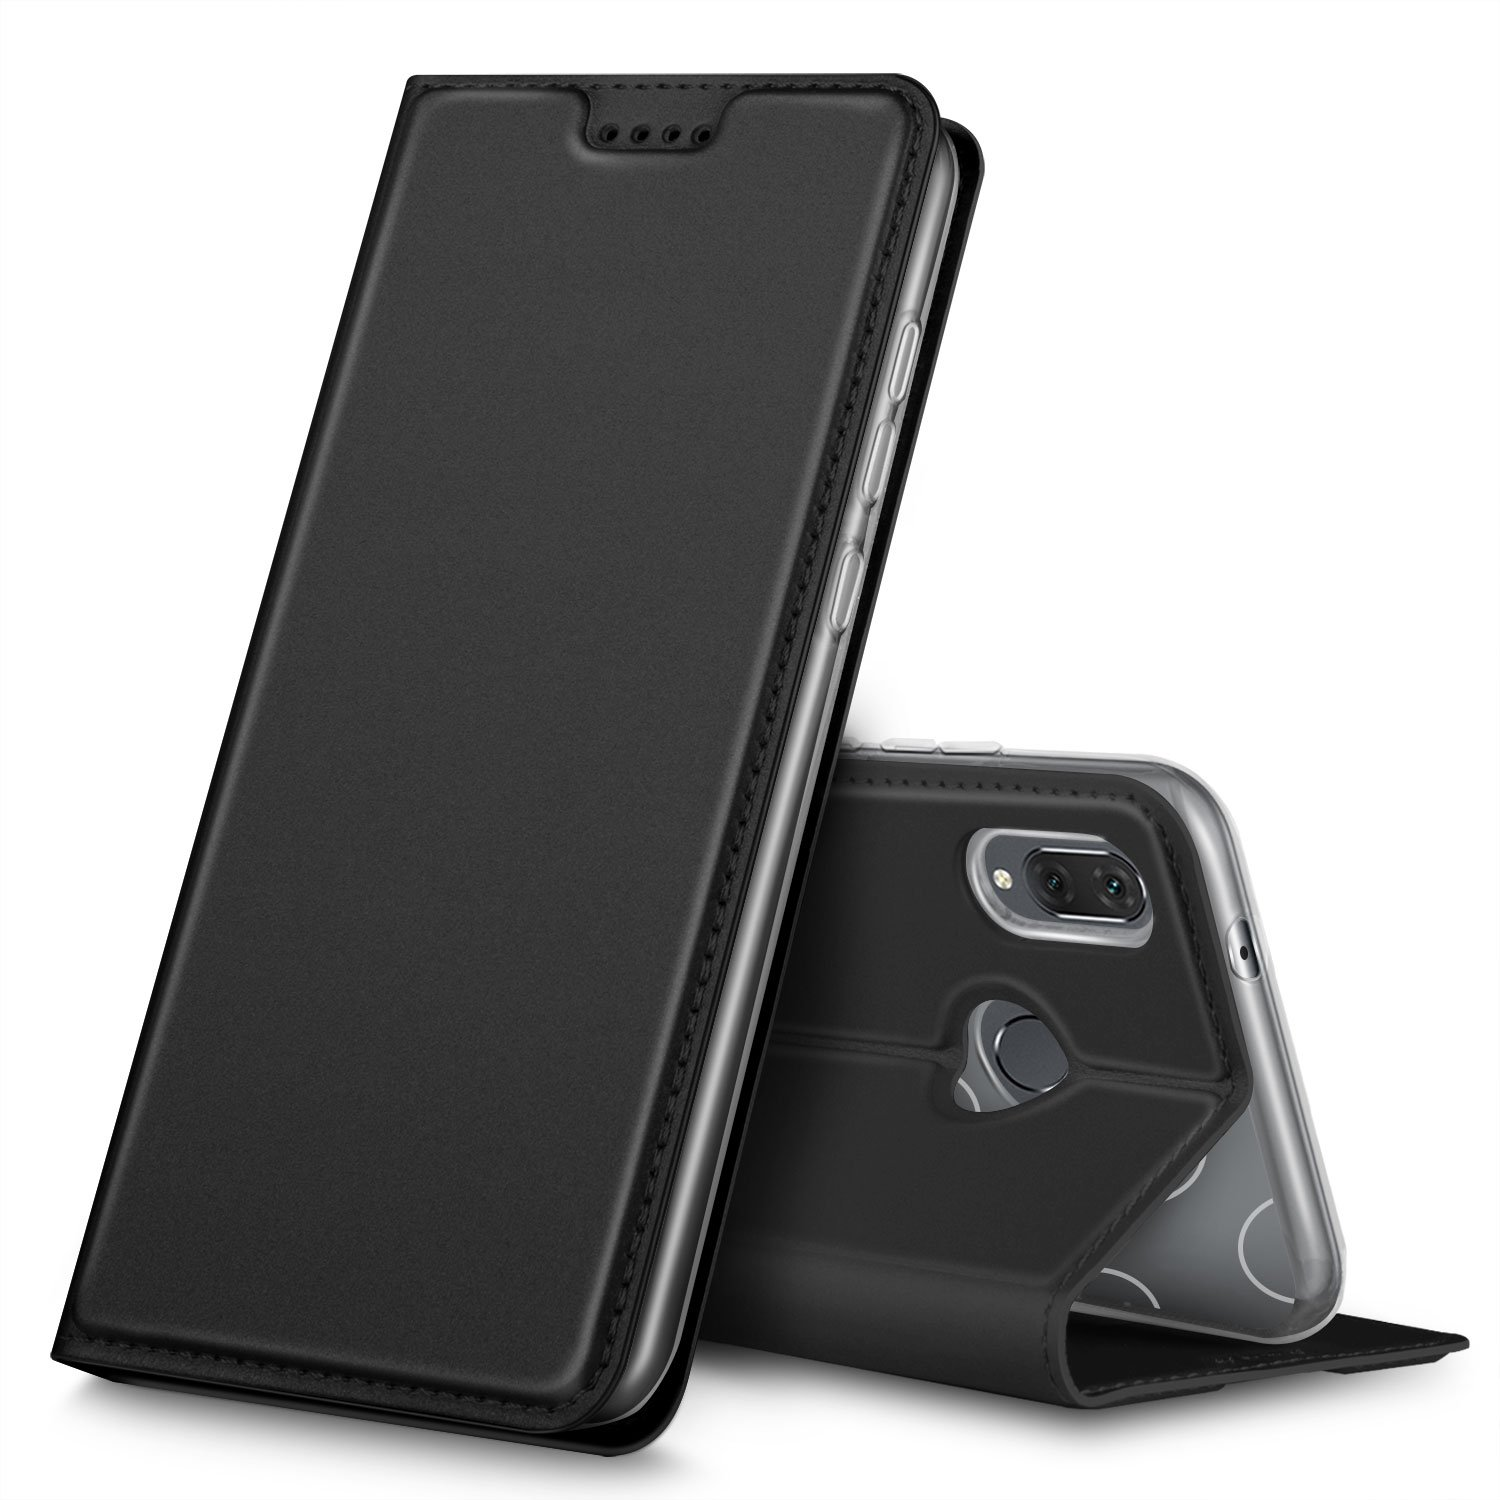 Huawei P20 lite Cover, iBetter Huawei P20 lite protective case, Function Stand, closed magnetic protective cover for Huawei P20 lite smartphone.Flip Series - Black